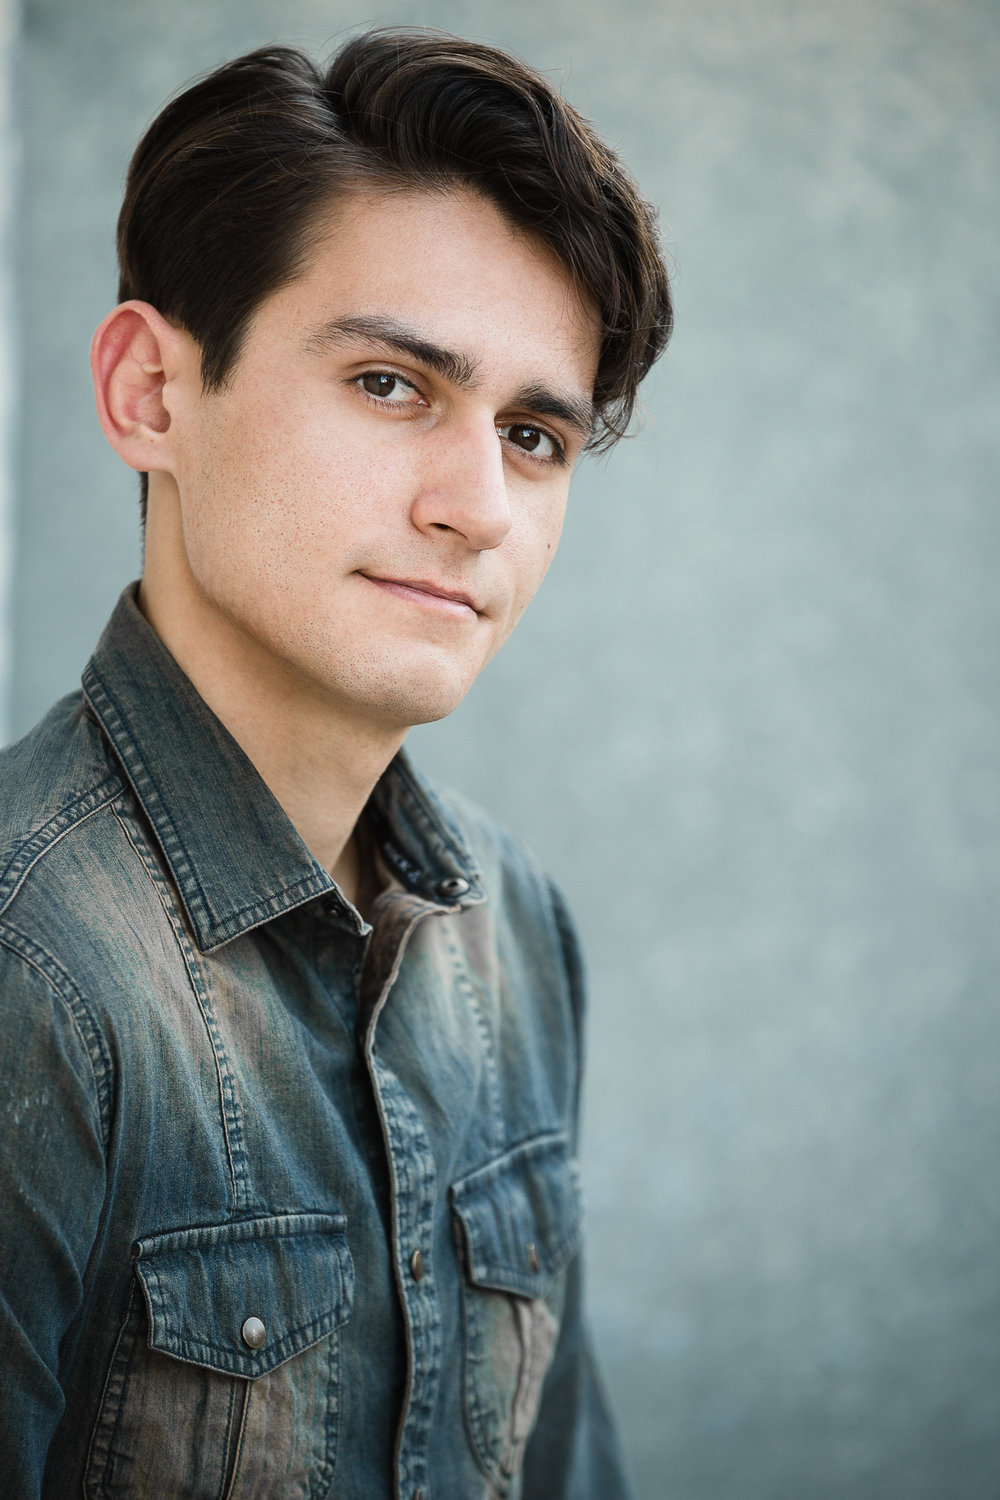 Gavin Velez Headshots_210-Edit-WEB.jpg